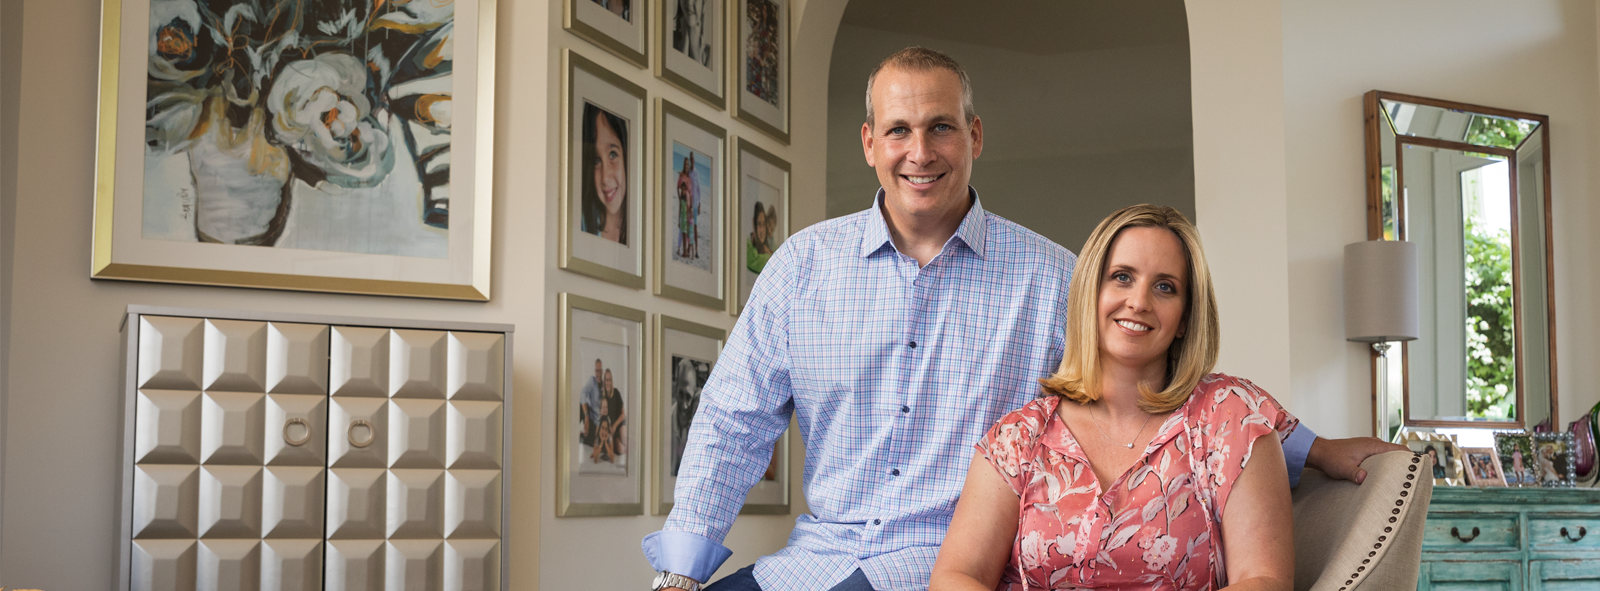 Image of First Republic Personal Banking client(s) Michael Buczyner and Jennifer Buczyner, M.D.